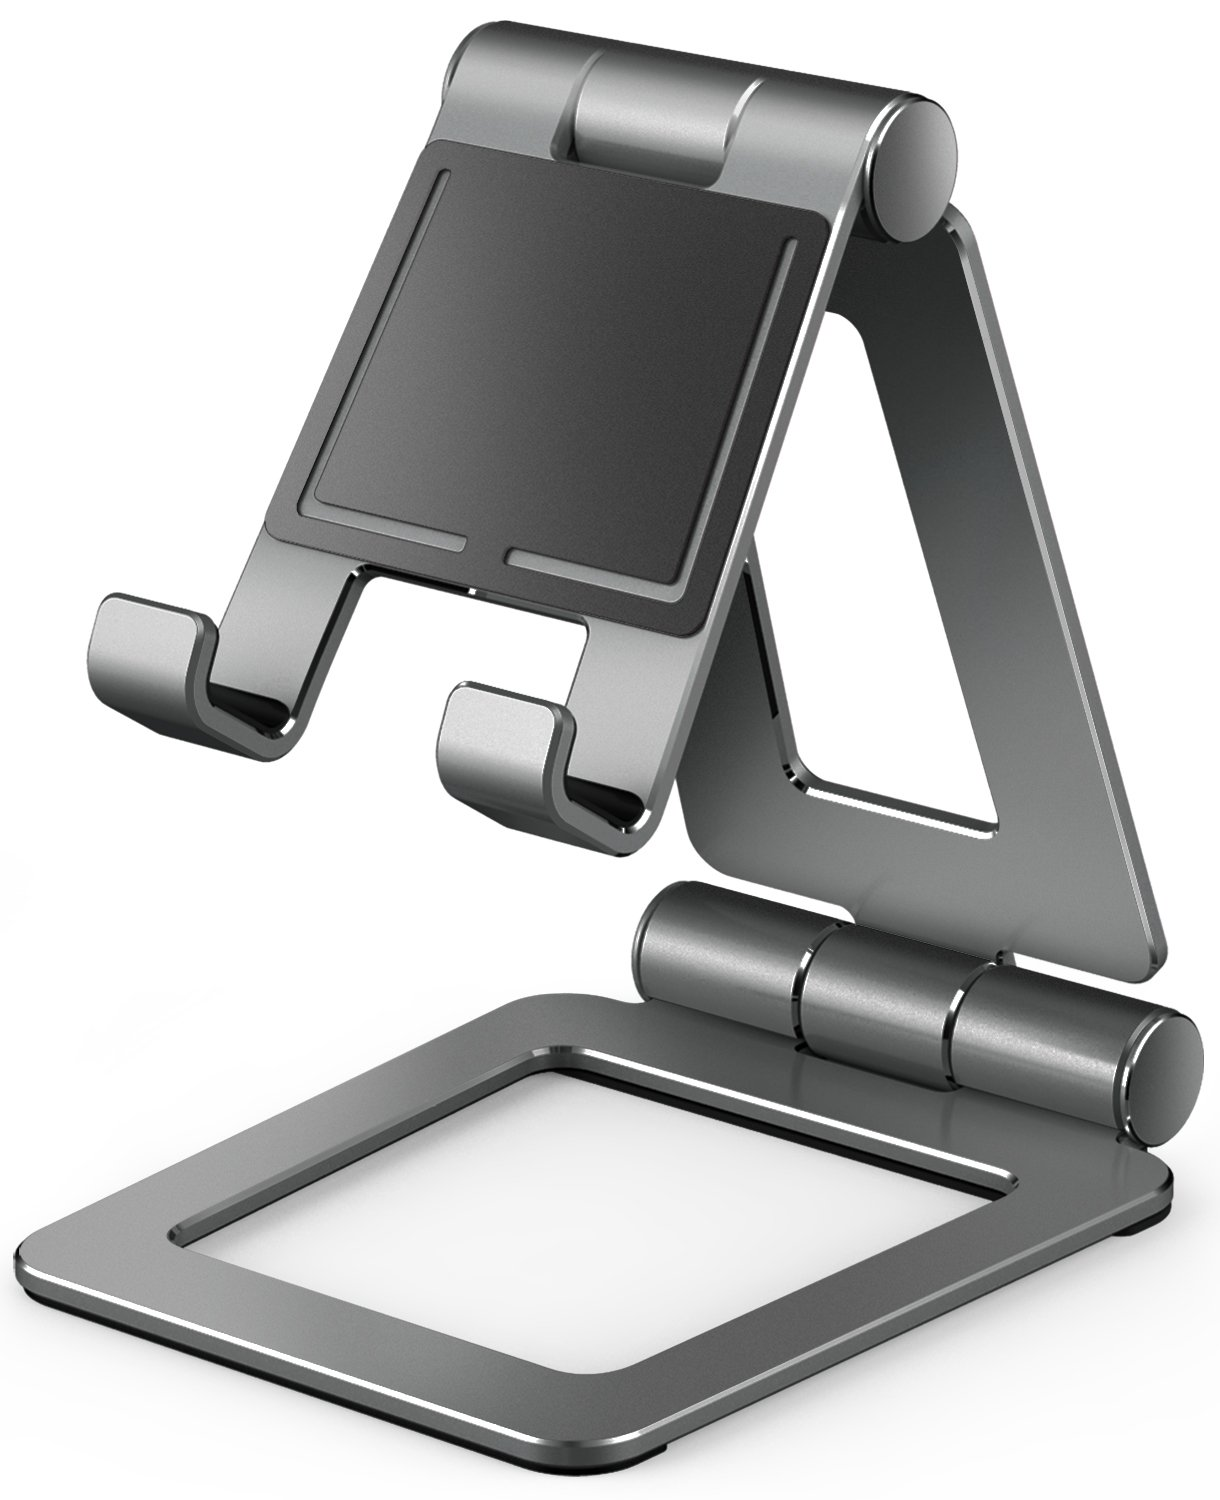 iPad Stand for Tablet Holders Adjustable iPhone Mobile Cell Phone Desk Stands for Nintendo Switch Playstand (A-gray)